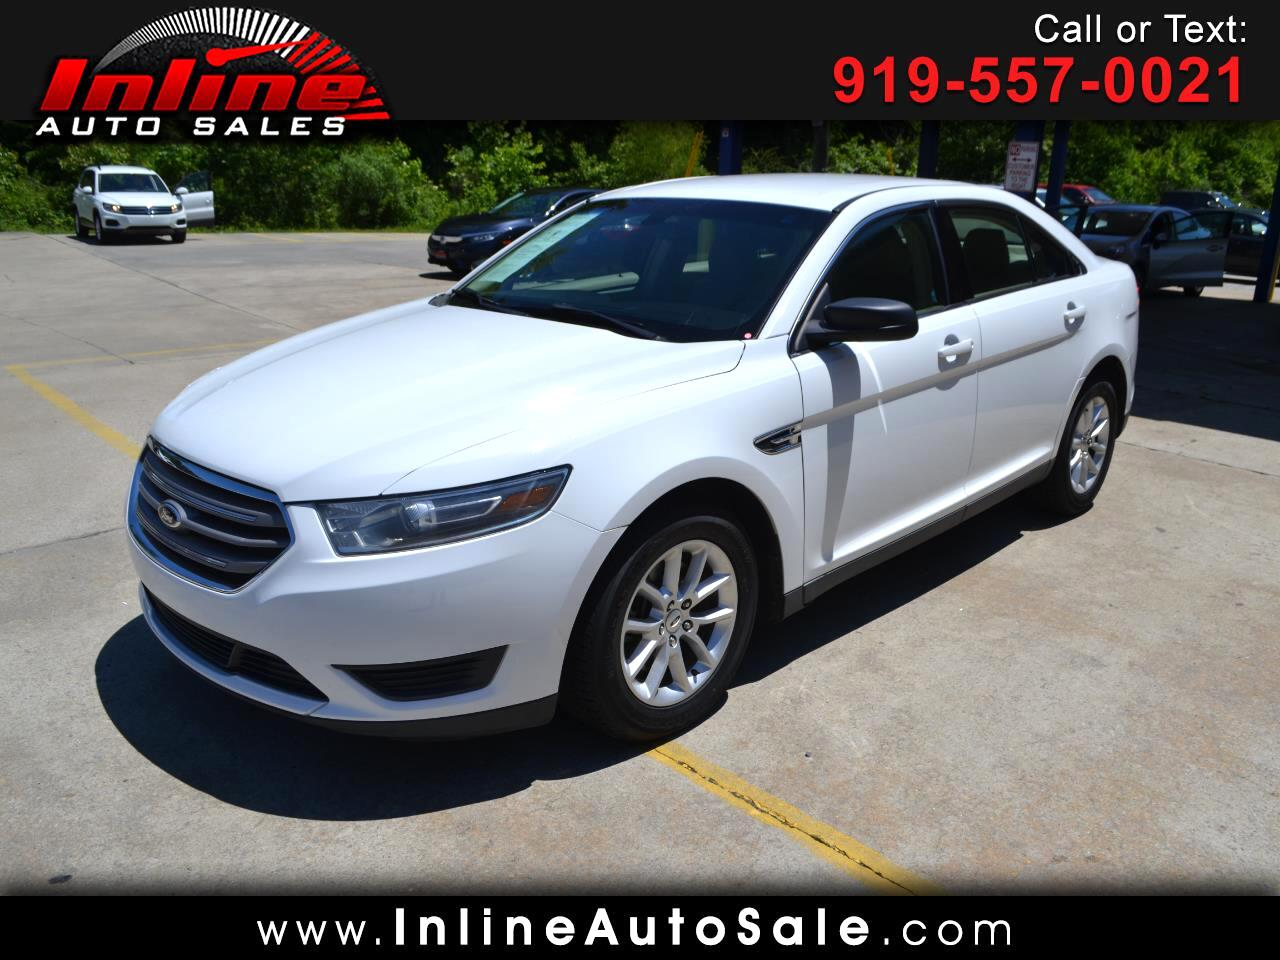 Ford Taurus 4dr Sdn SE FWD 2014